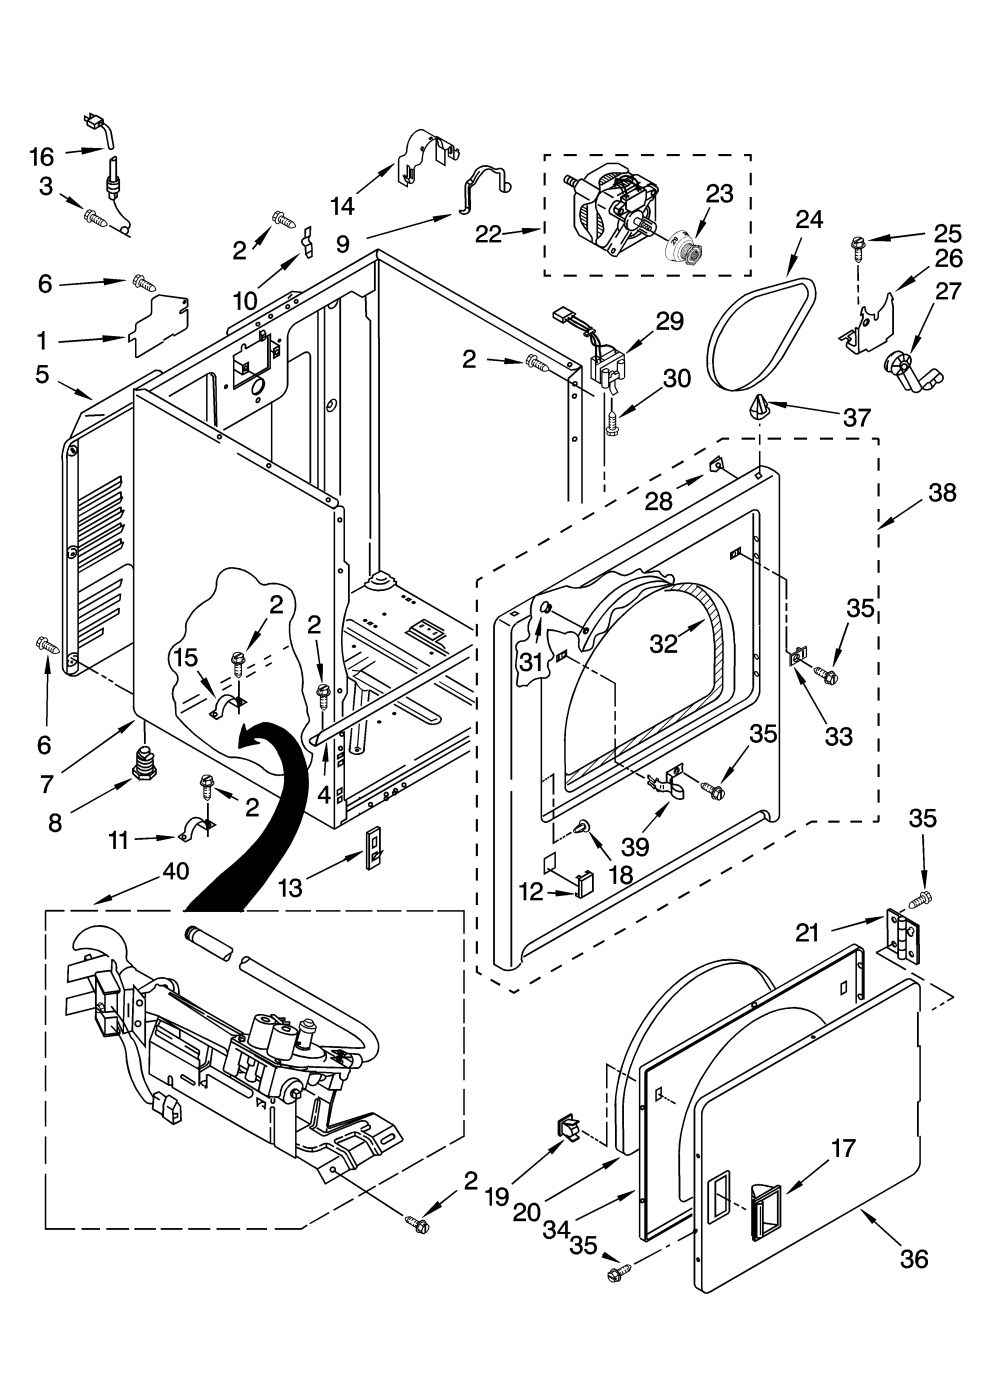 medium resolution of sears dryer schematic wiring diagrams scematic sears dryer model 1107092299 diagram kenmore model 11078432700 residential dryer